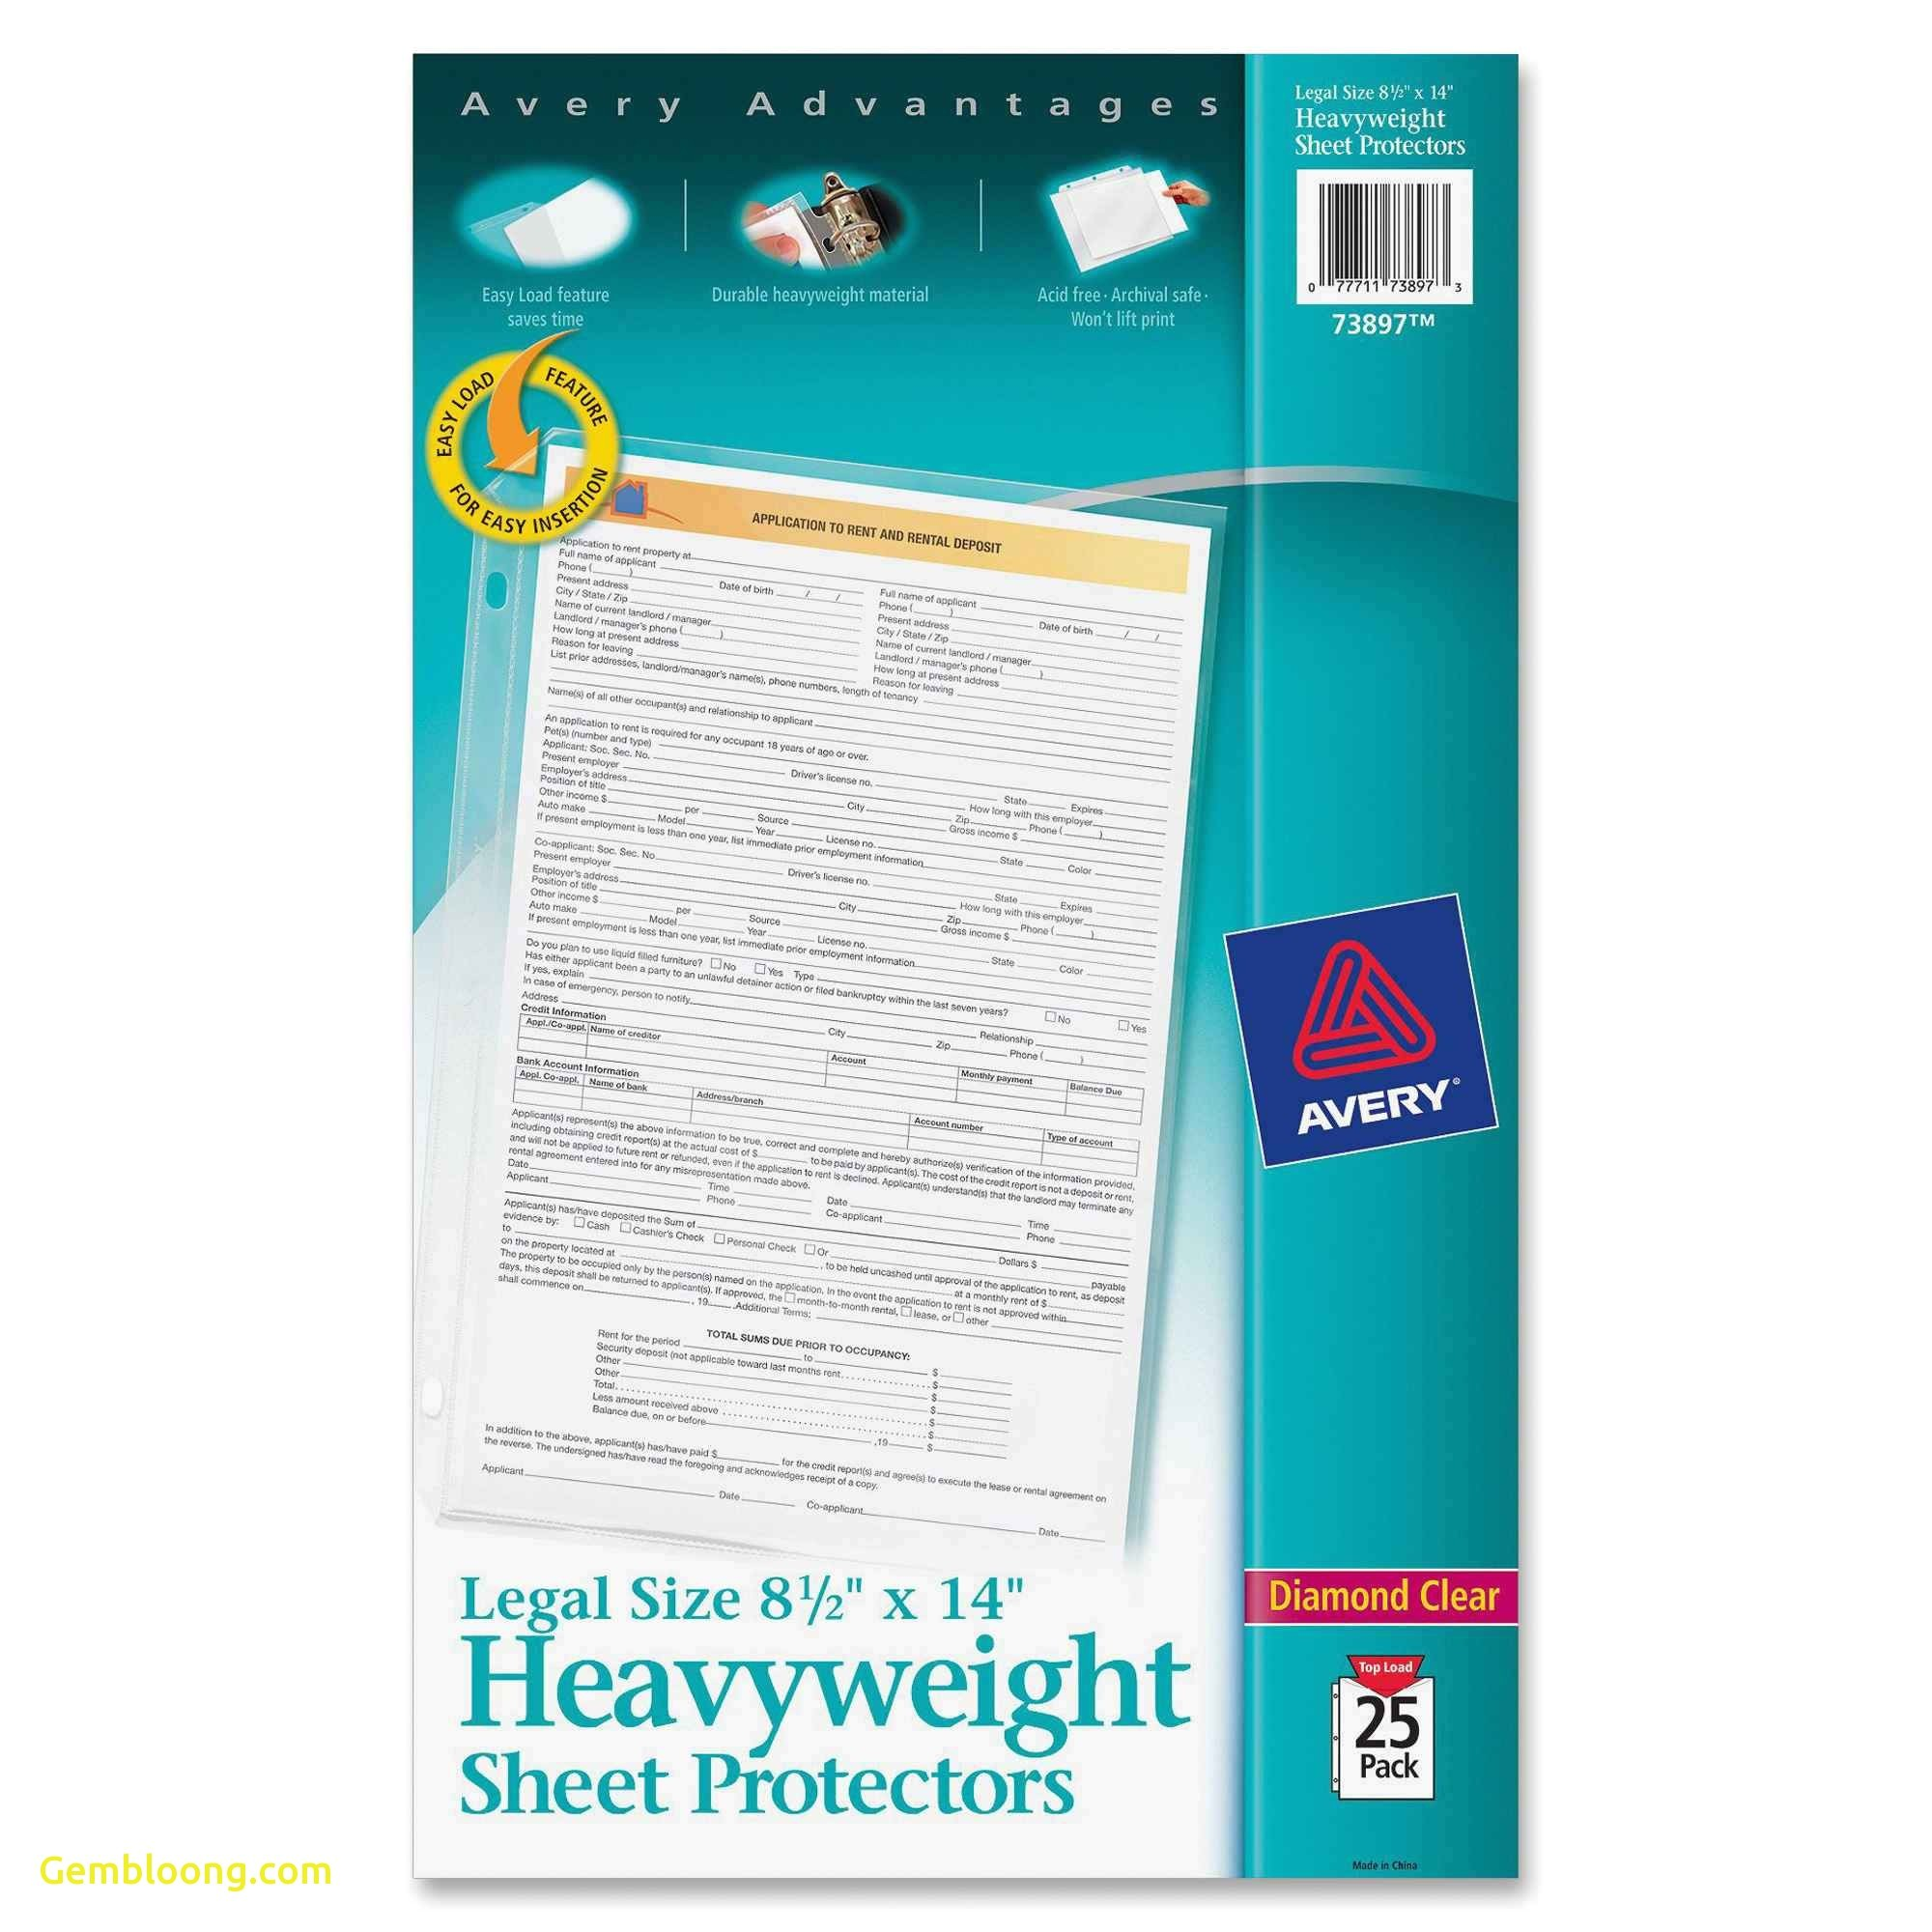 Avery File Folder Labels 5366 Template Best Of Avery Label Template 5366 Best Templates